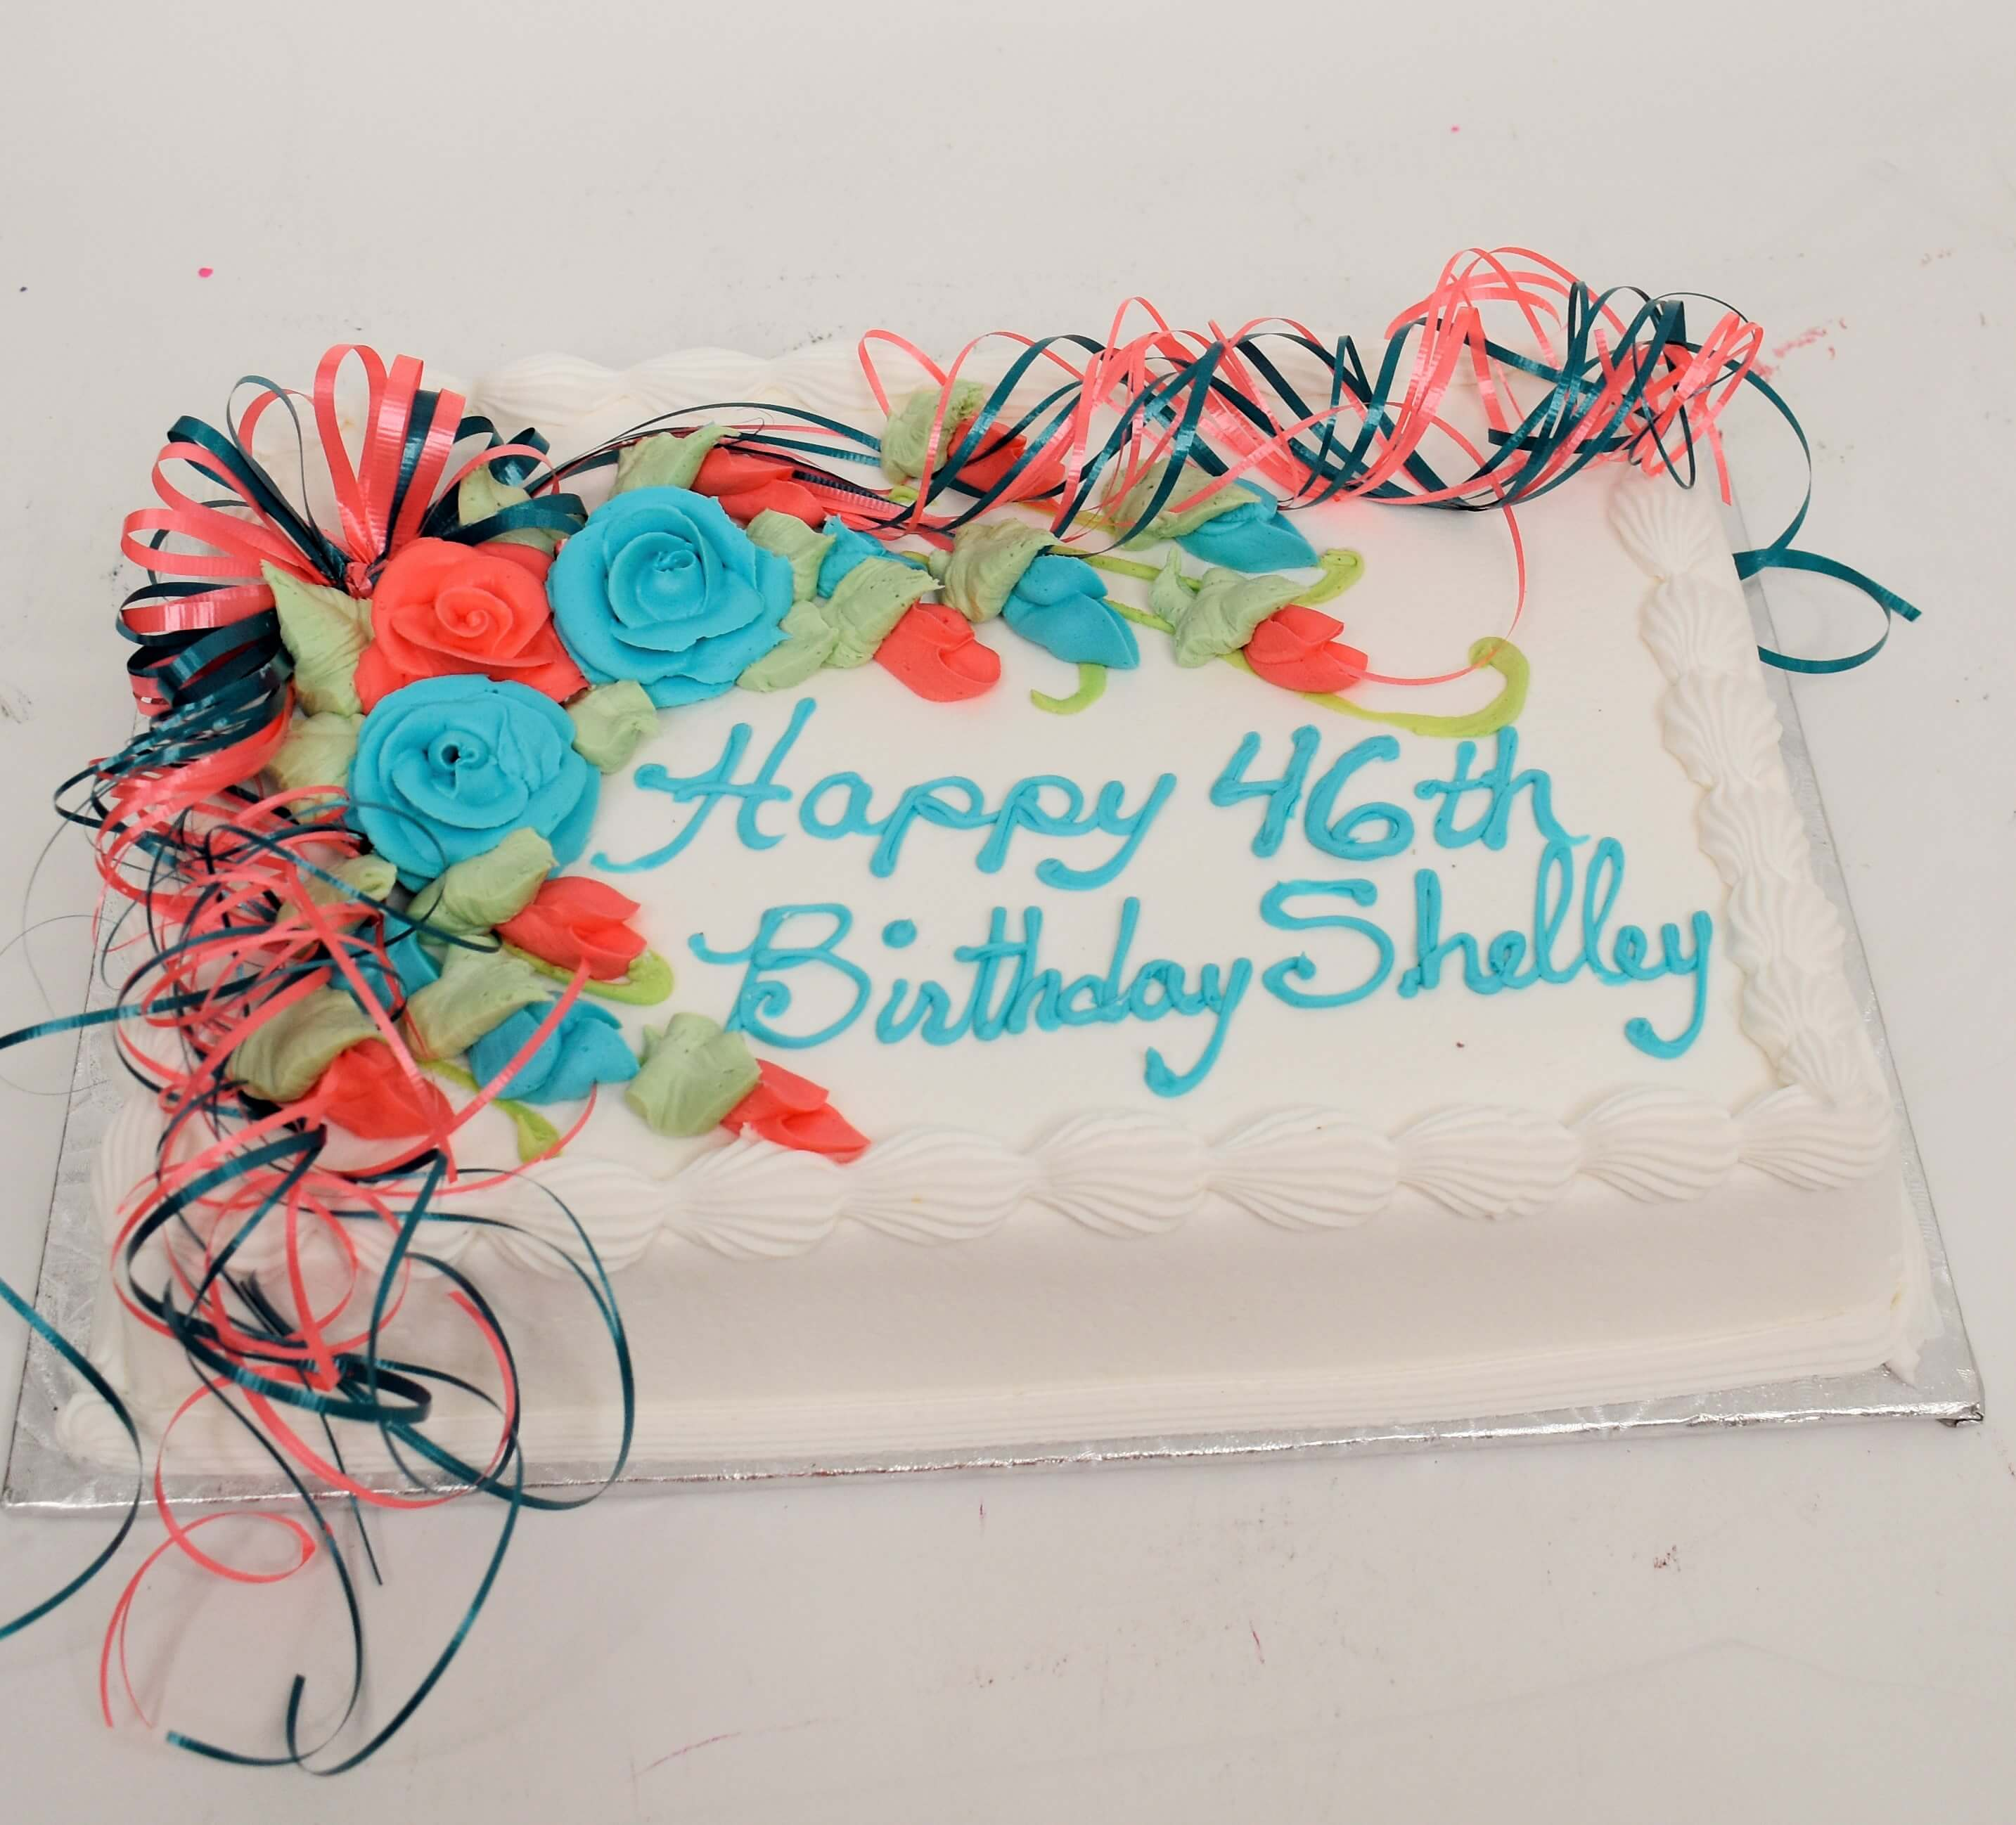 McArthur's Bakery Custom Cake With Bright Pink And Bright Blue Roses